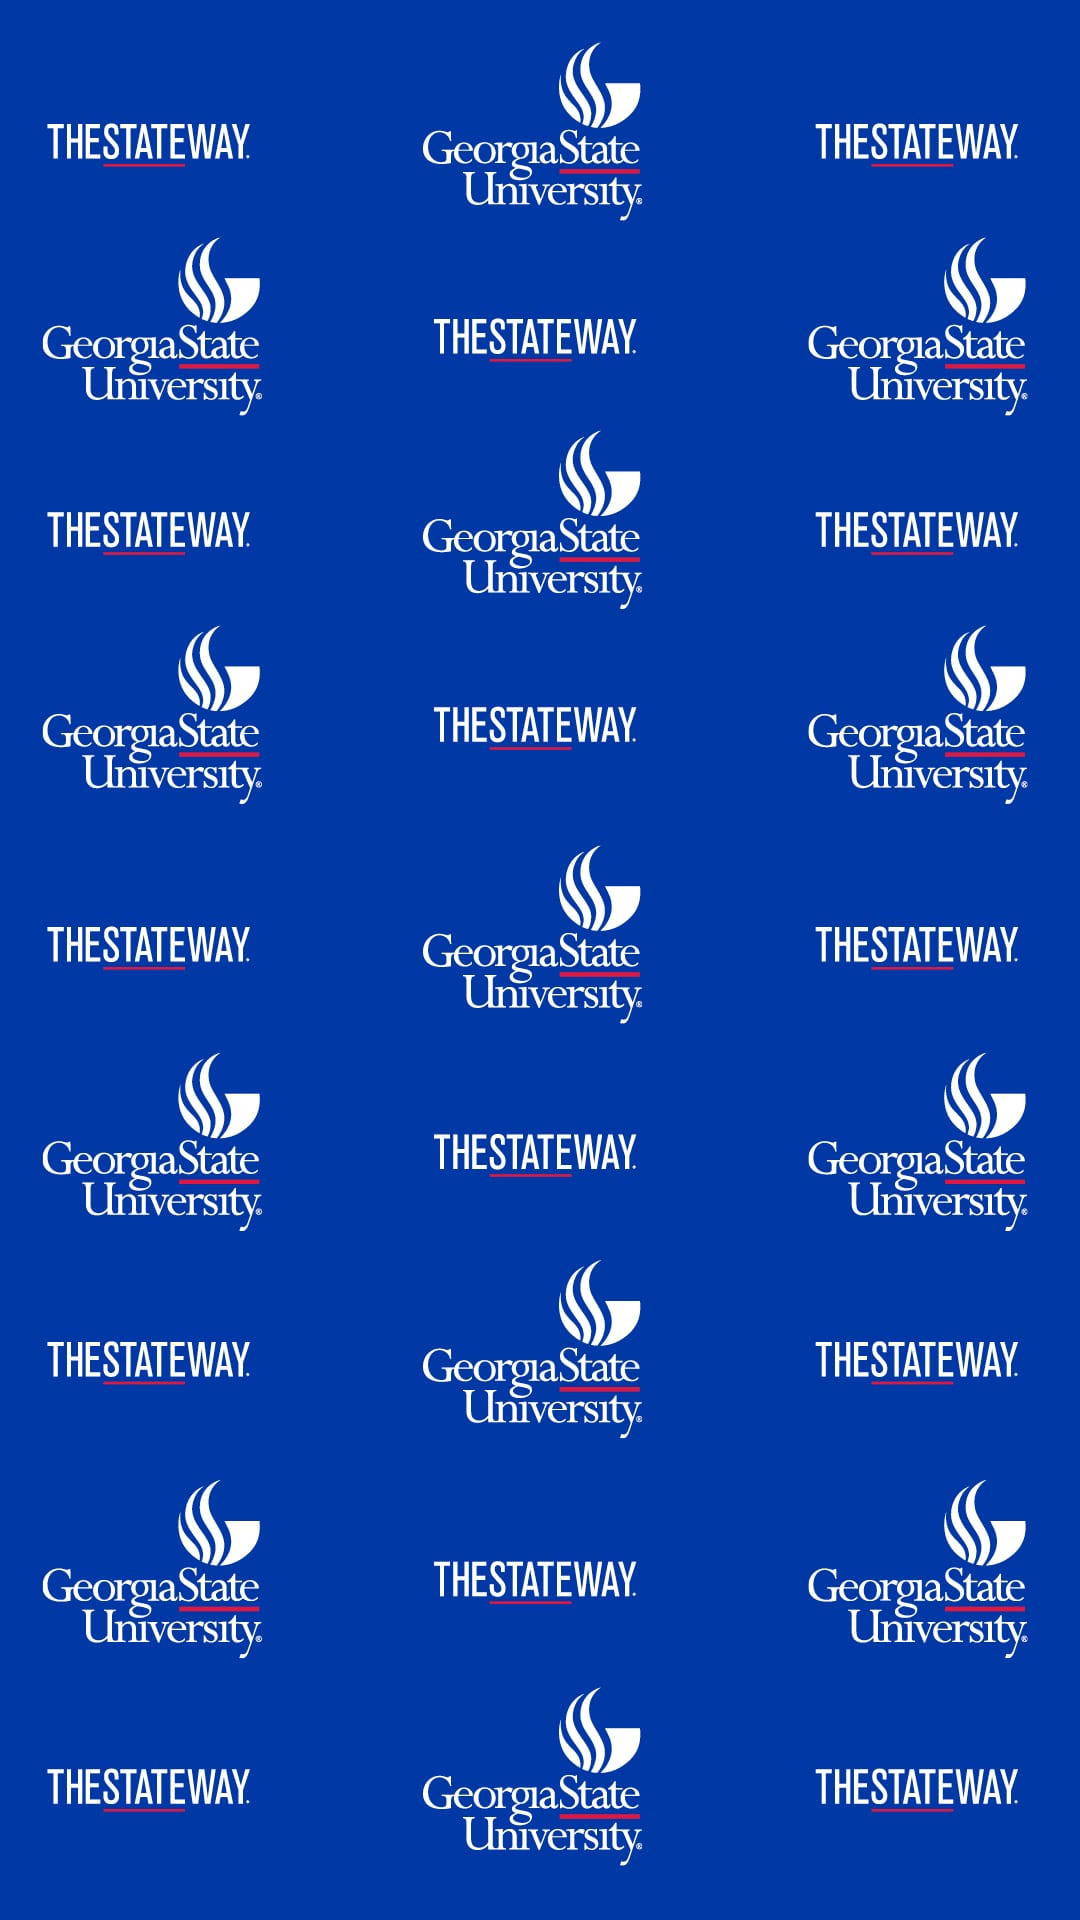 Vertical Image with repeated alternating TheStateWay and Georgia State Logos